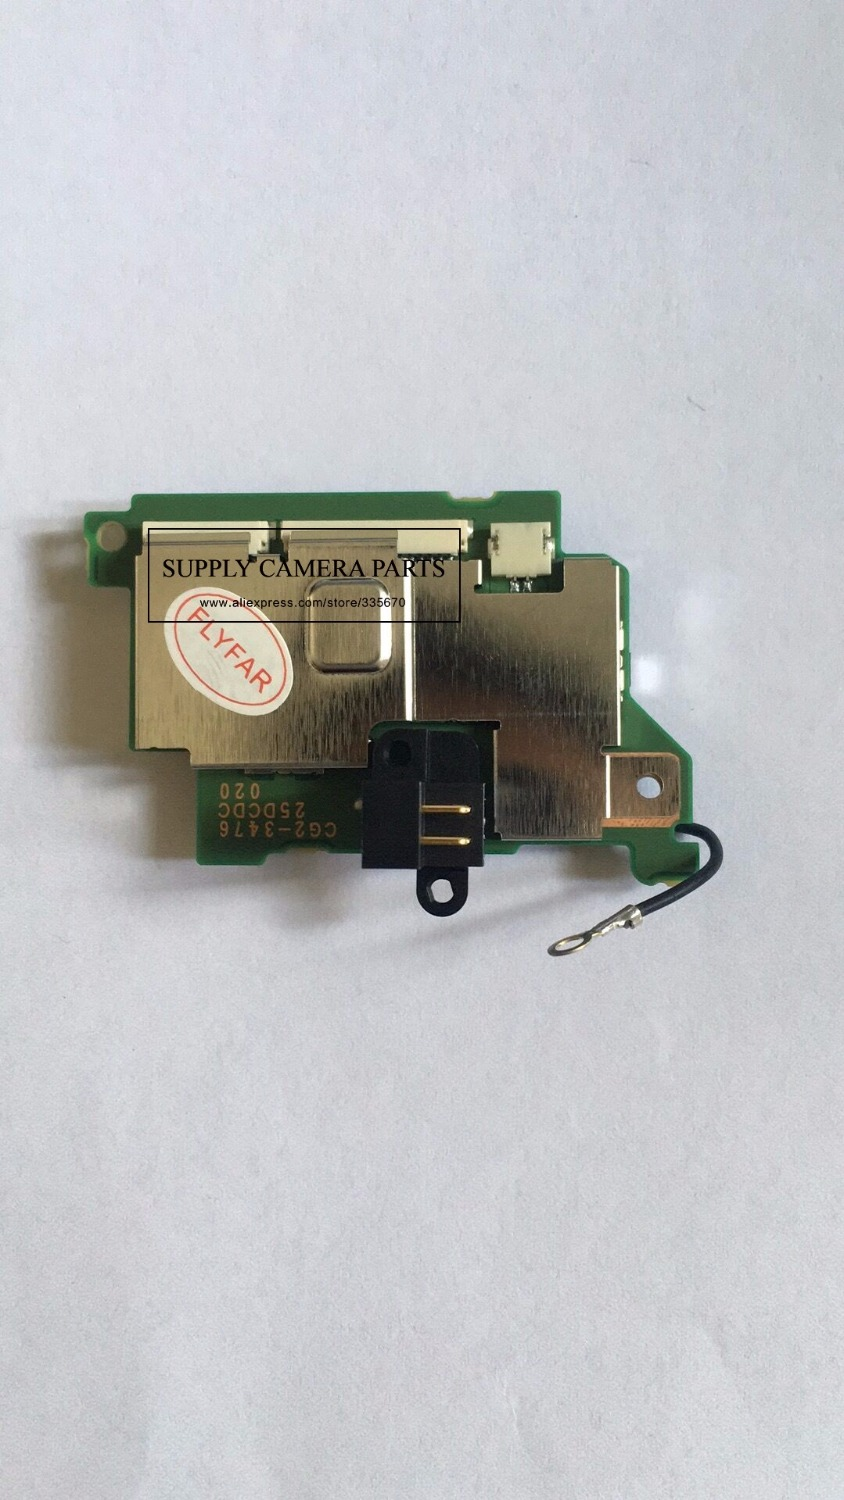 FREE SHIPPING! 90%new  70D Drive Board PCB For Canon 70D POWERBOARD 70D power board ASSY DC/DC repair Part CameraFREE SHIPPING! 90%new  70D Drive Board PCB For Canon 70D POWERBOARD 70D power board ASSY DC/DC repair Part Camera